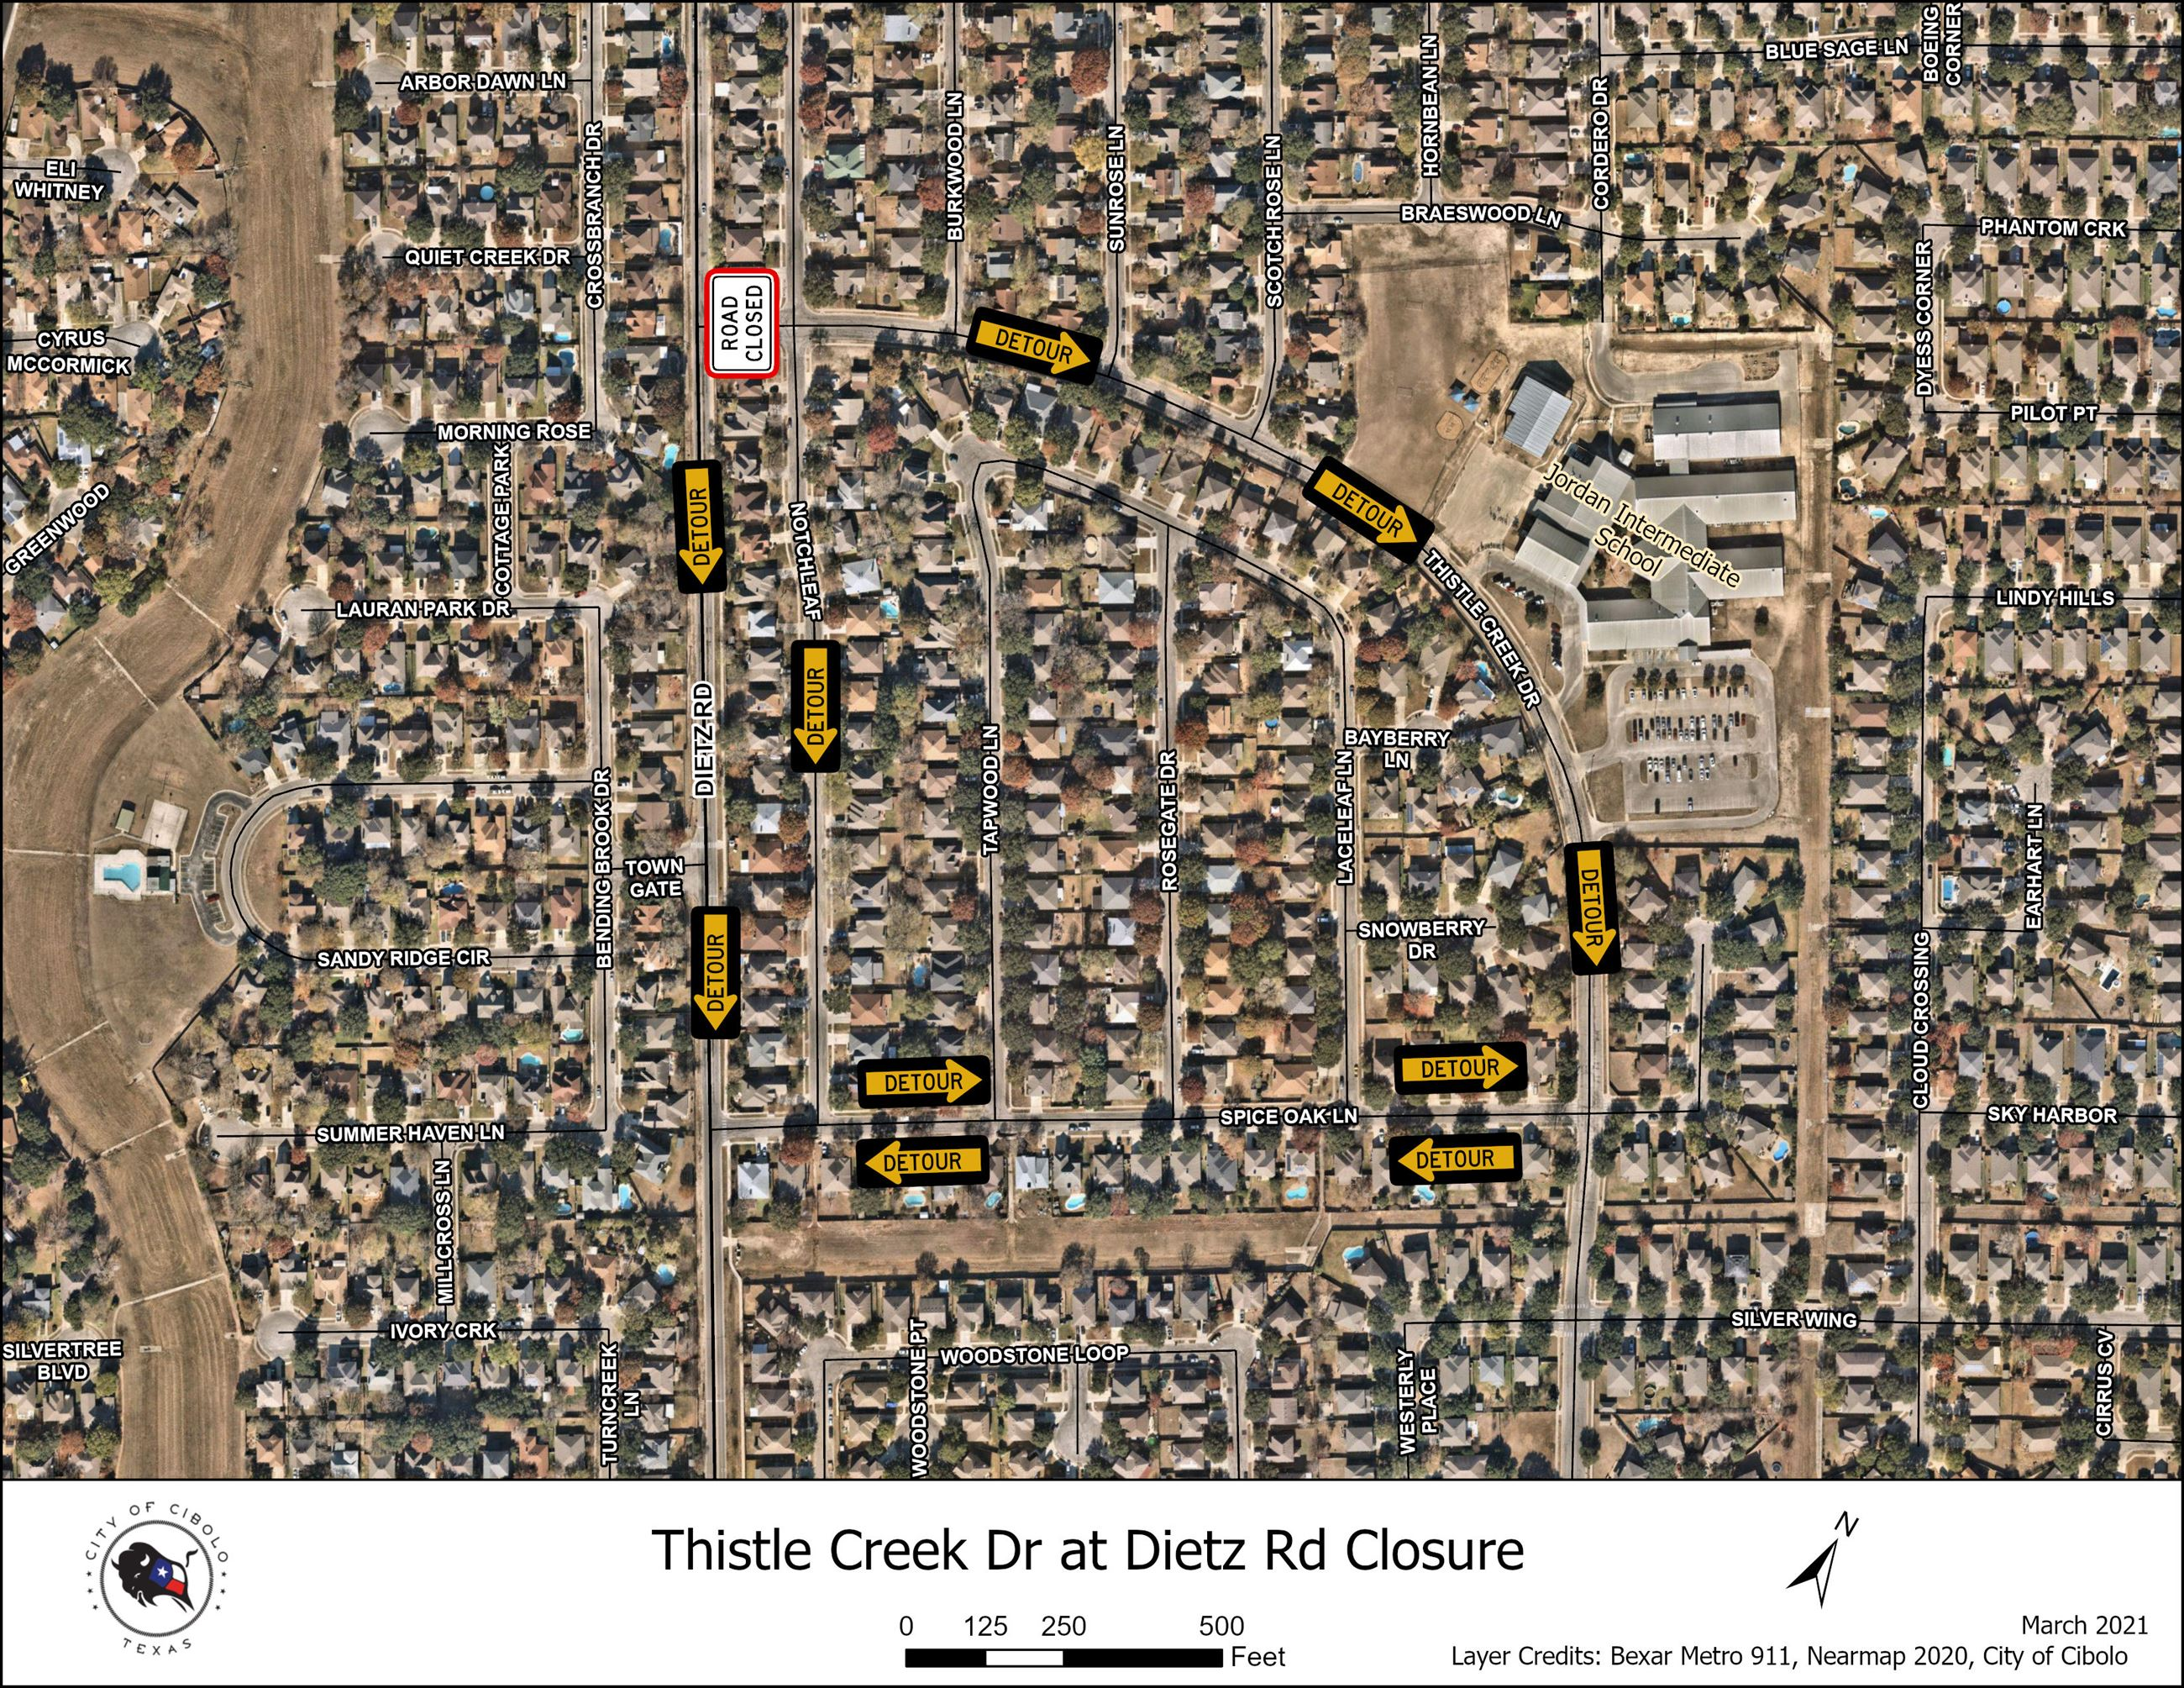 Thistle Creek and Dietz closure 2021